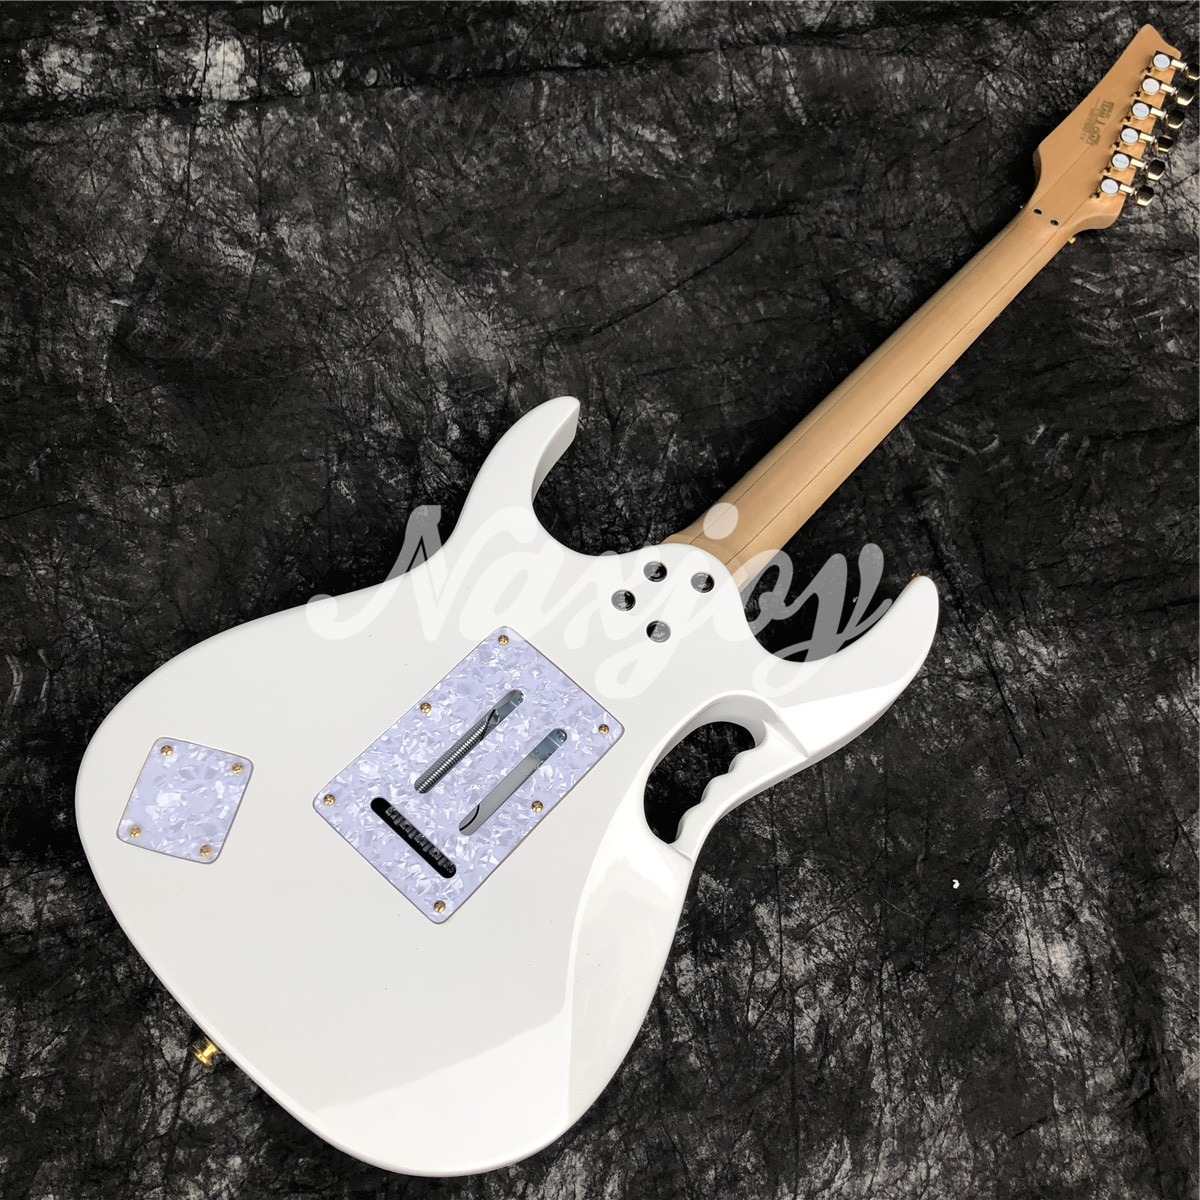 Top Quality Tree Of Life Inlays White Color Electric Guitar,Golded Hardware Solid wood Electric Guitar enlarge